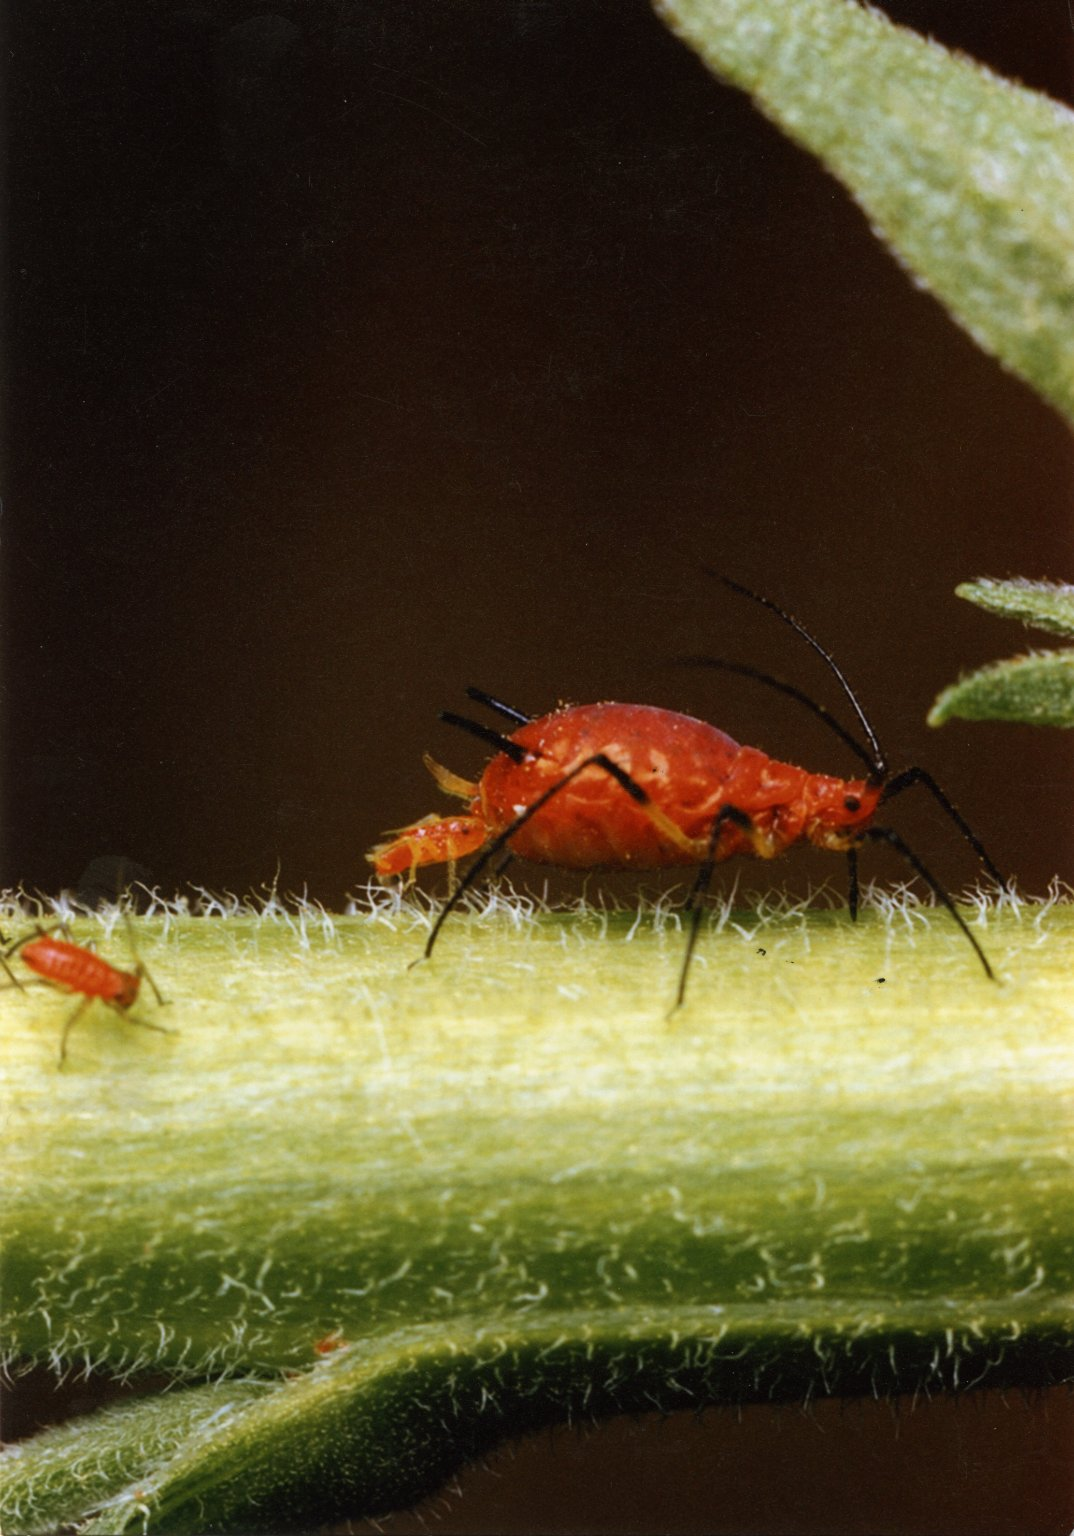 Close up of red aphid on green stalk